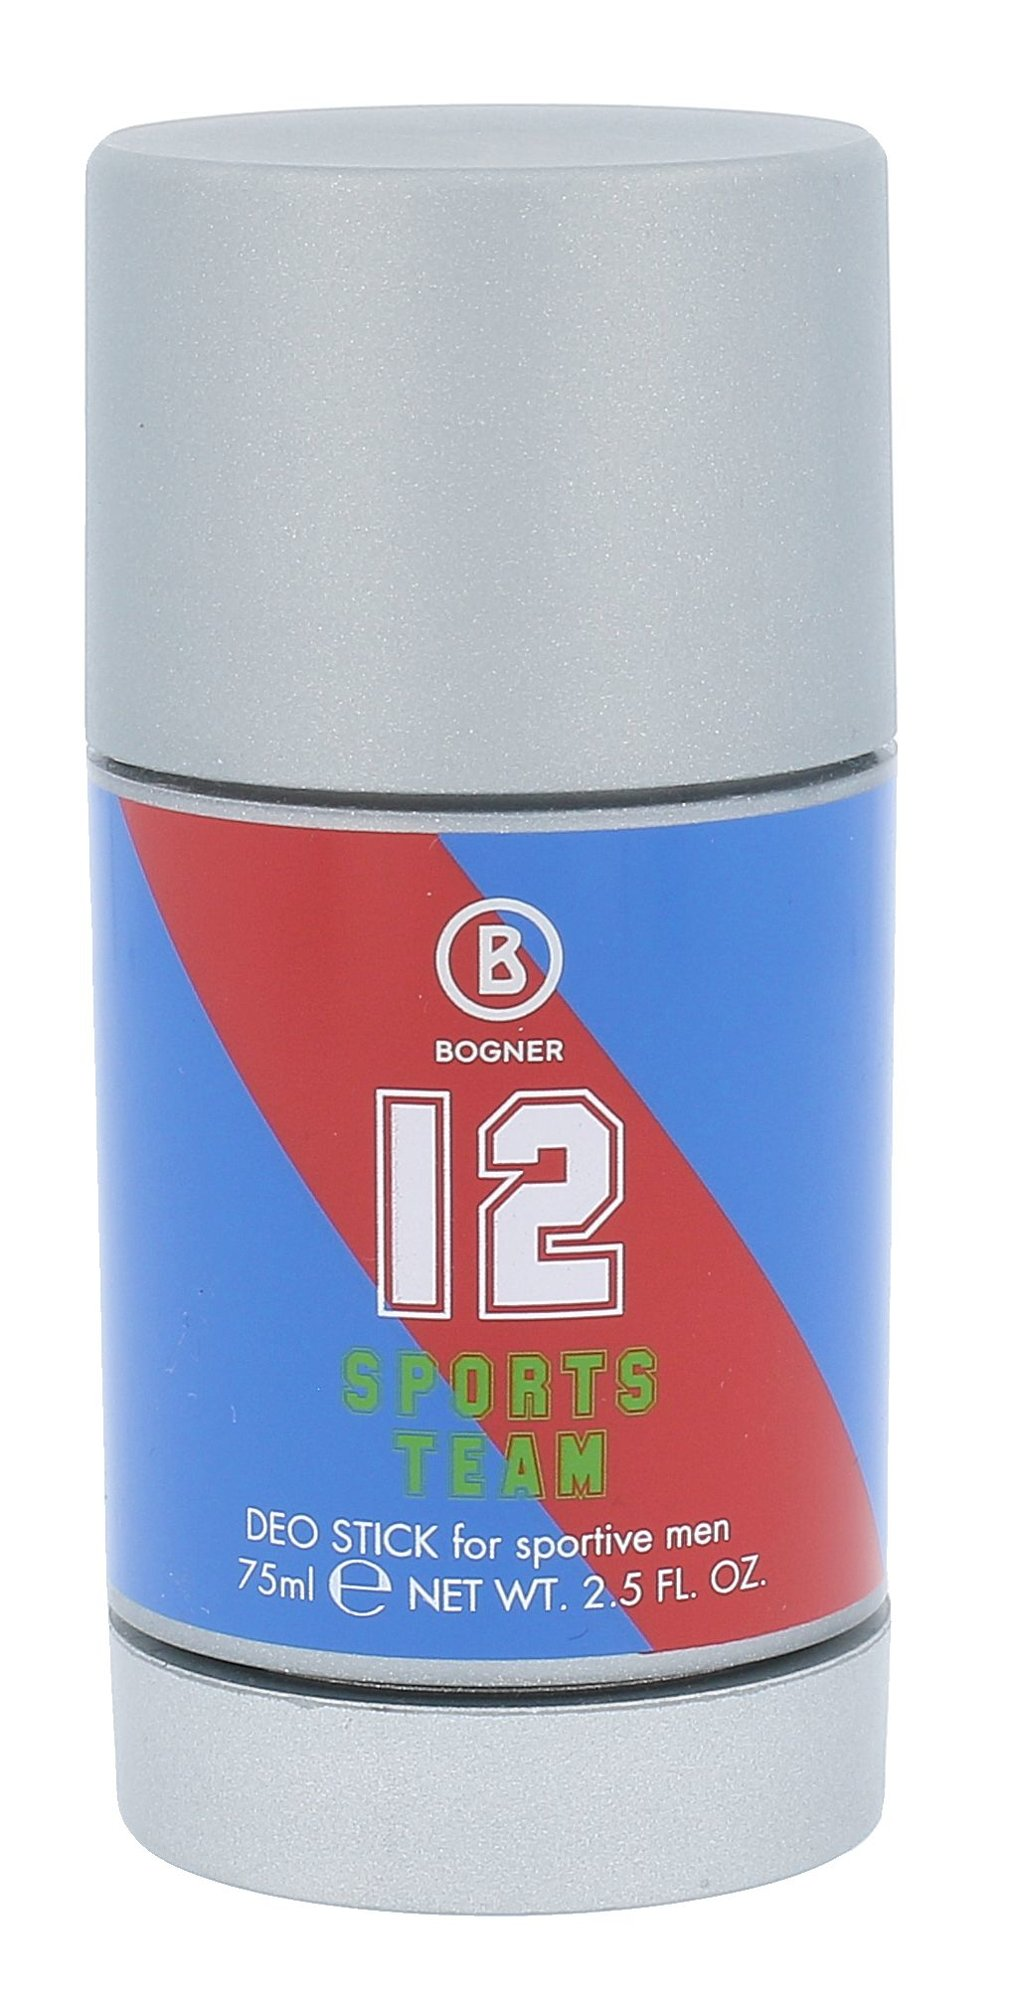 Bogner Sports Team 12 Deostick 75ml